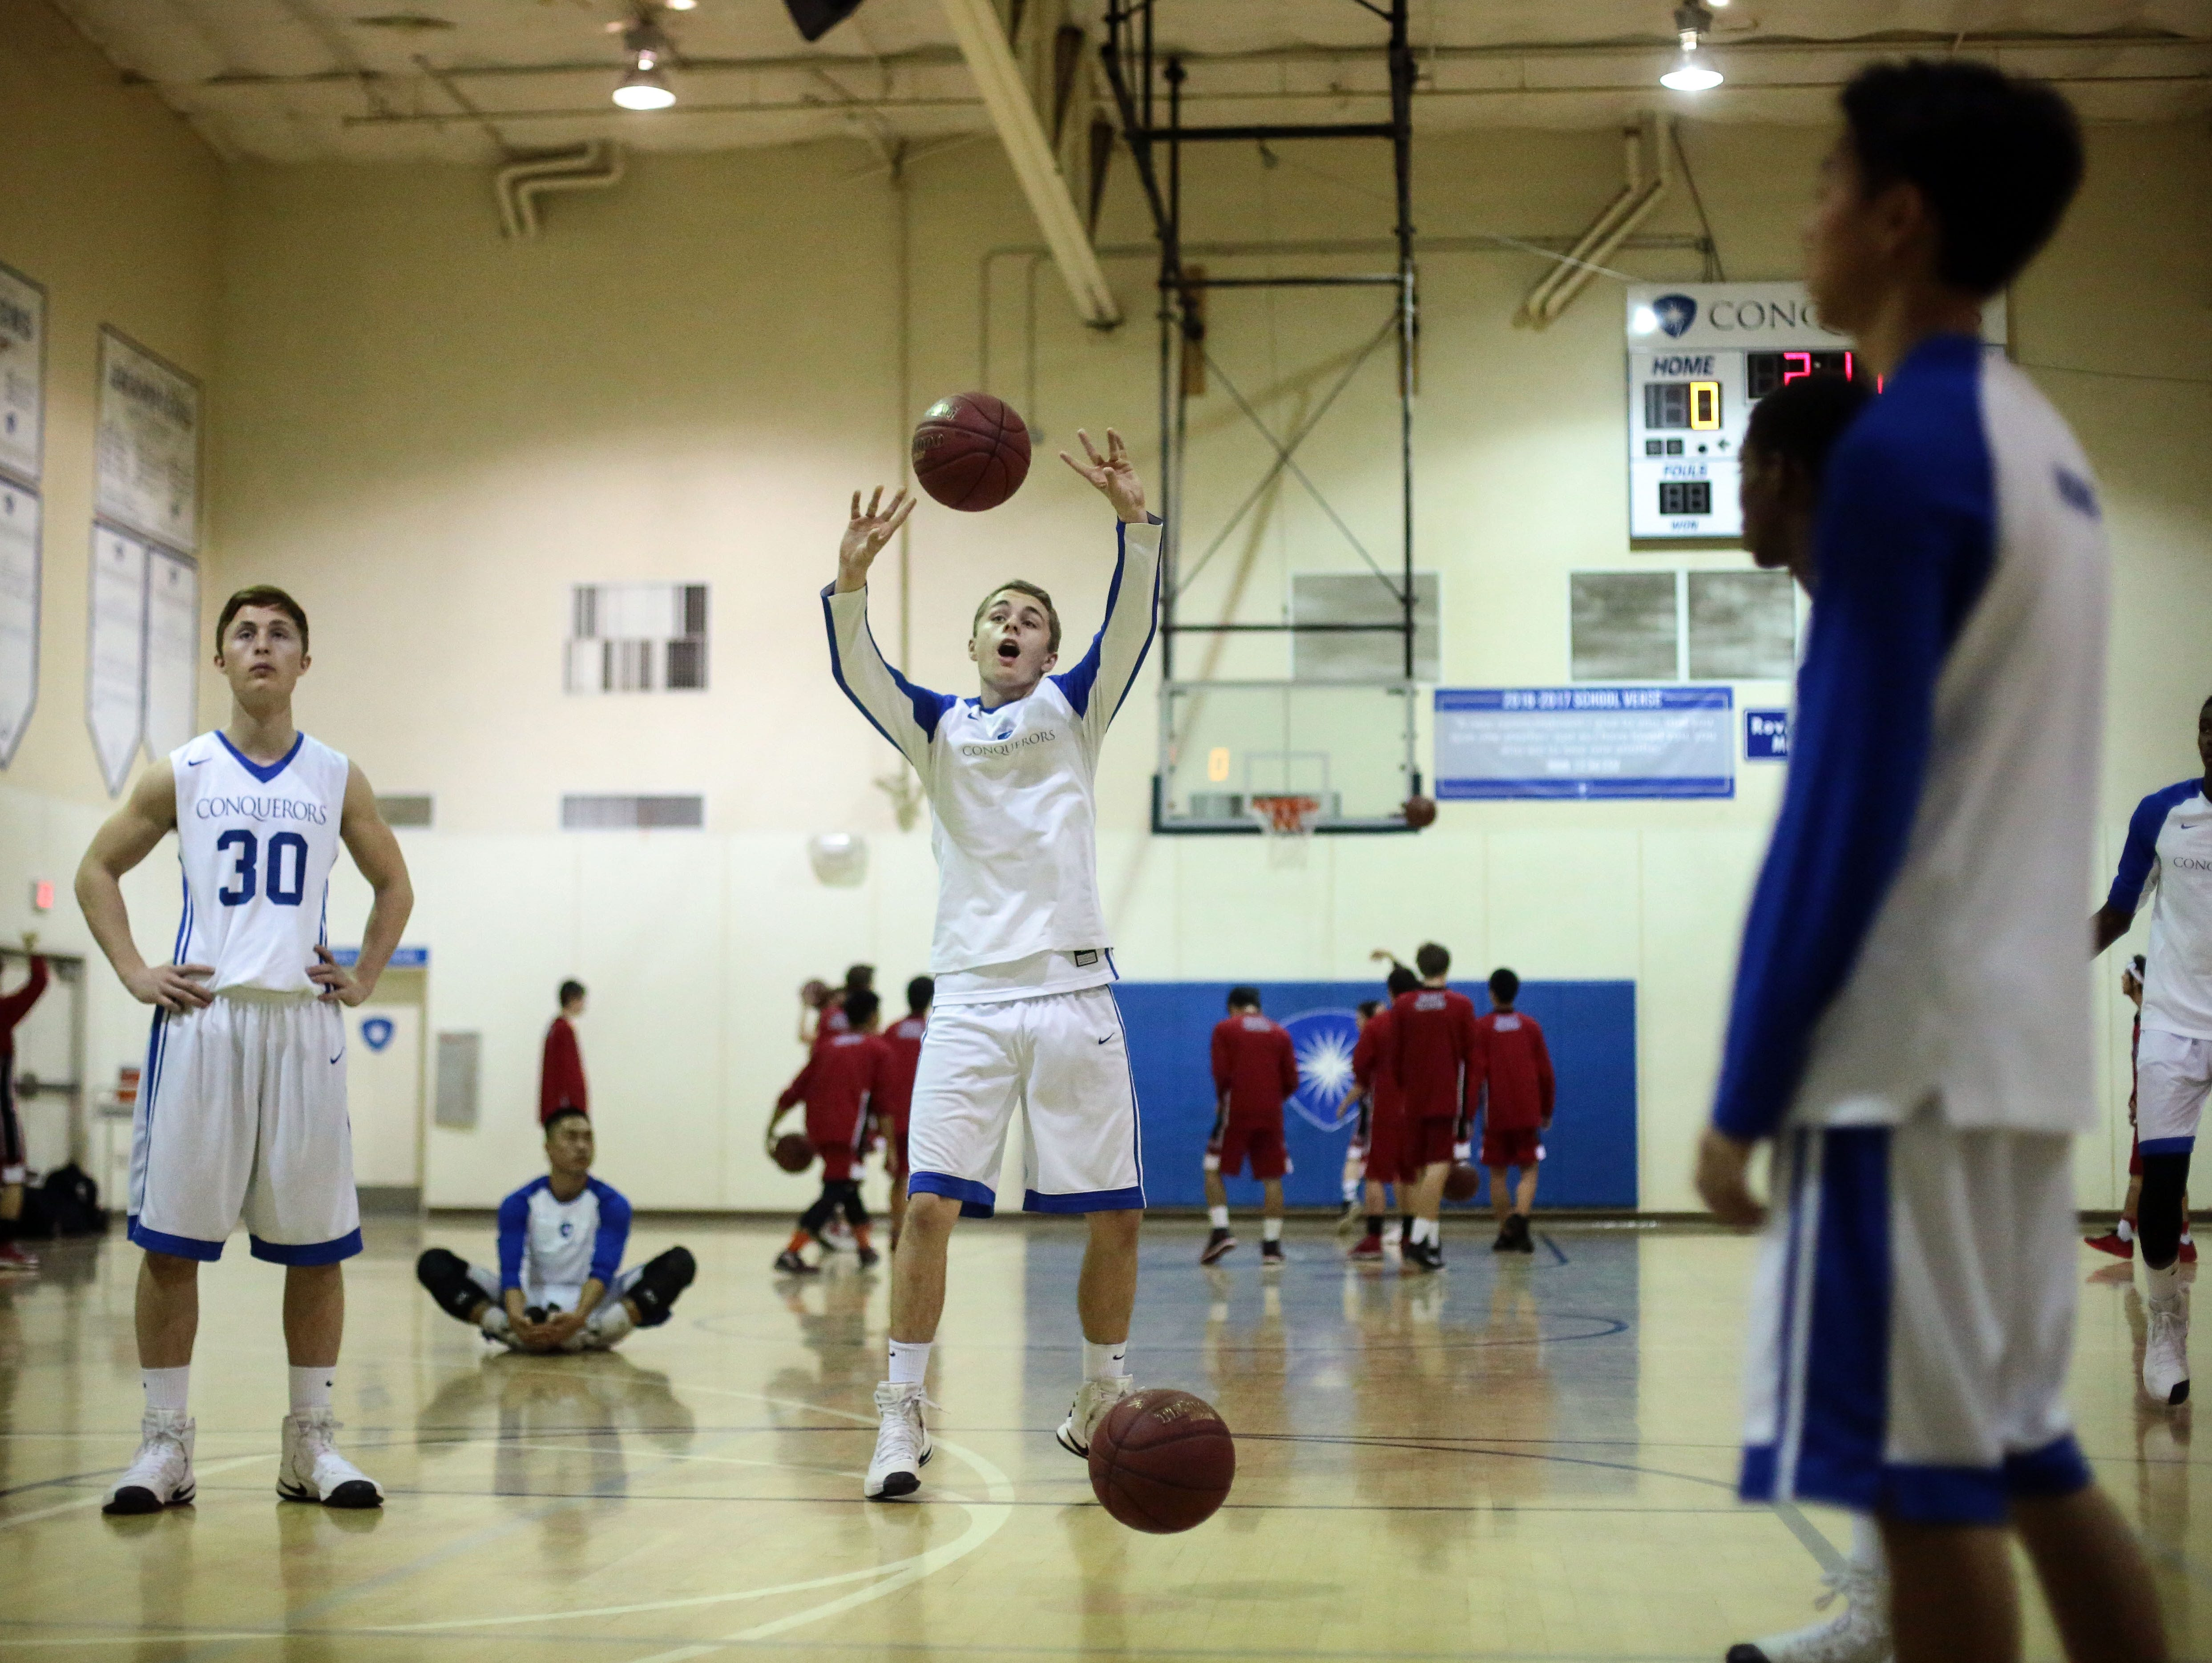 Desert Christian forward Will Whitaker shoots during warm up with his team on Wednesday, February 7, 2017 in Bermuda Dunes before their game with Palm Valley.